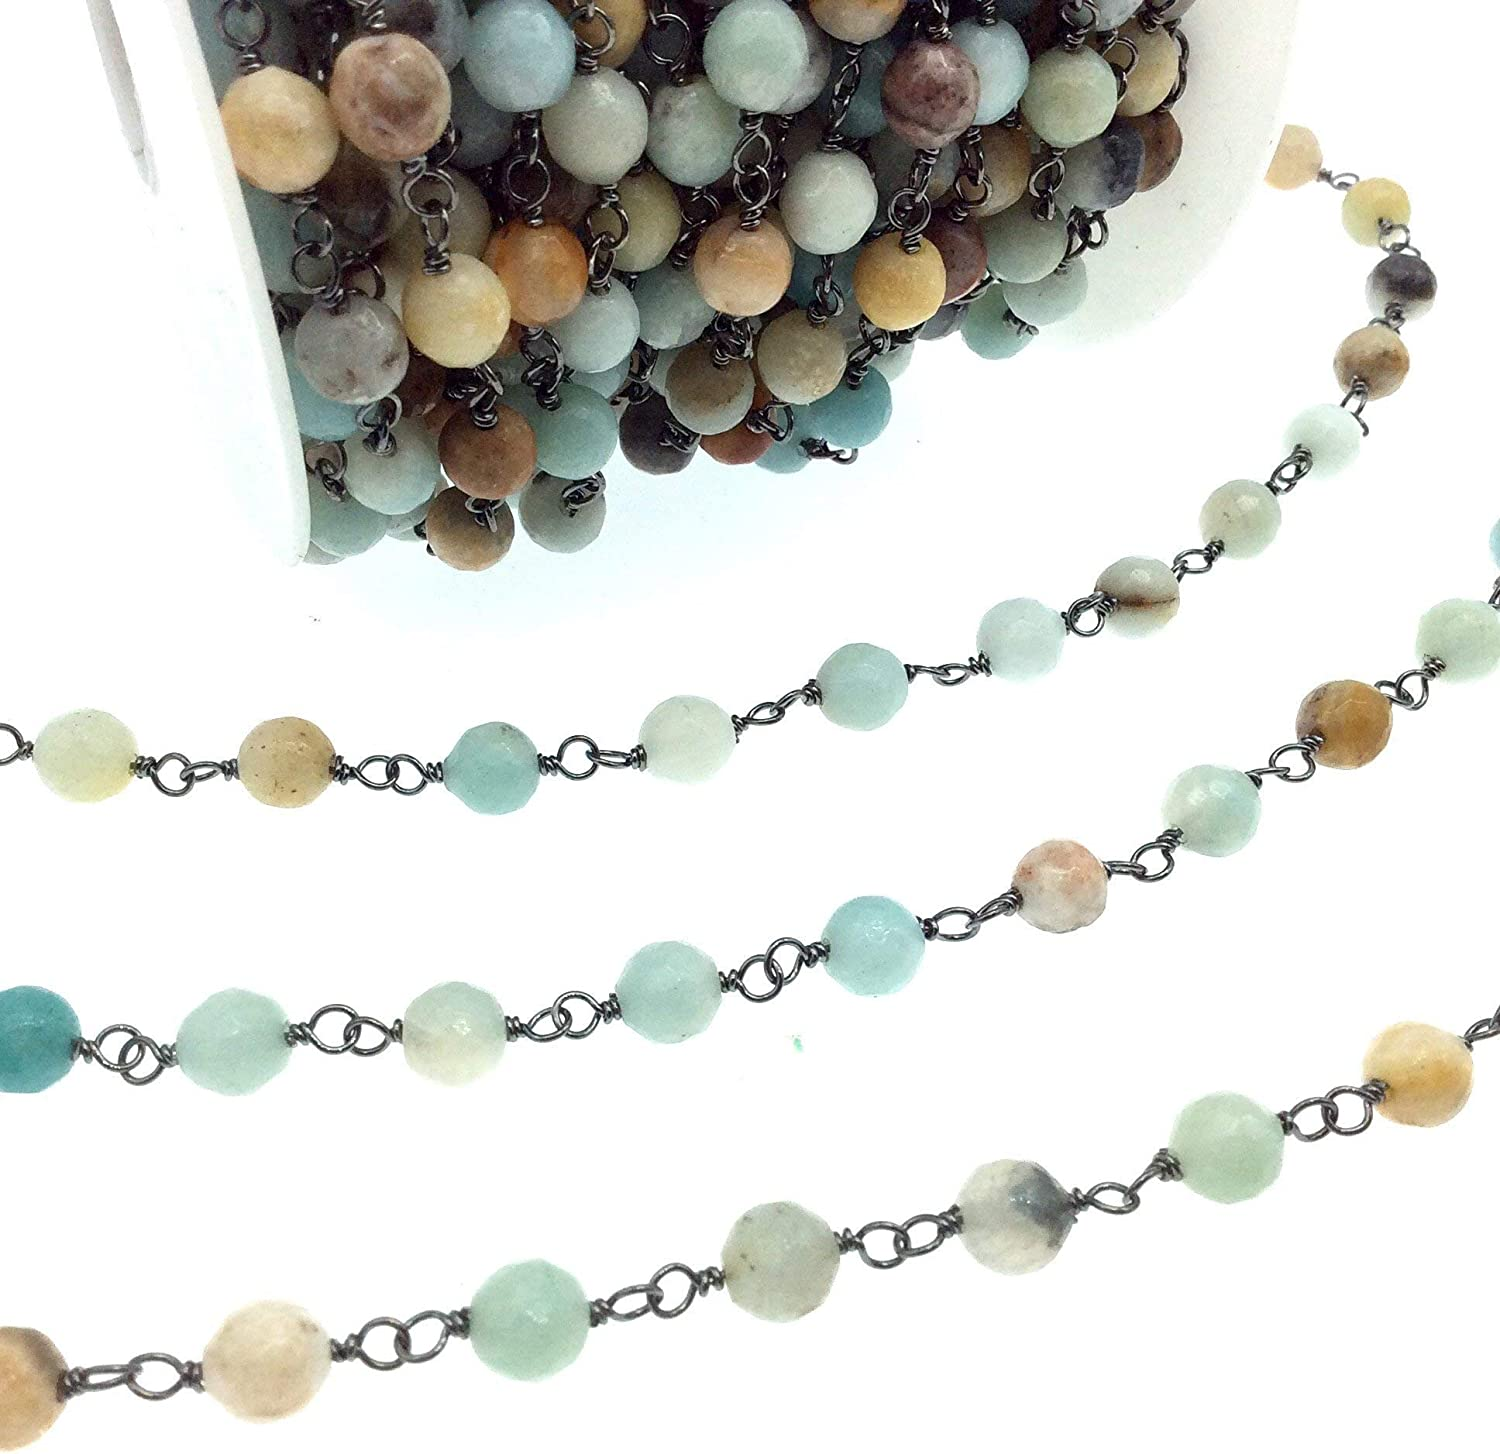 Gunmetal Super special price Plated Copper Wrapped Rosary 6mm Chain Faceted with Denver Mall Nat